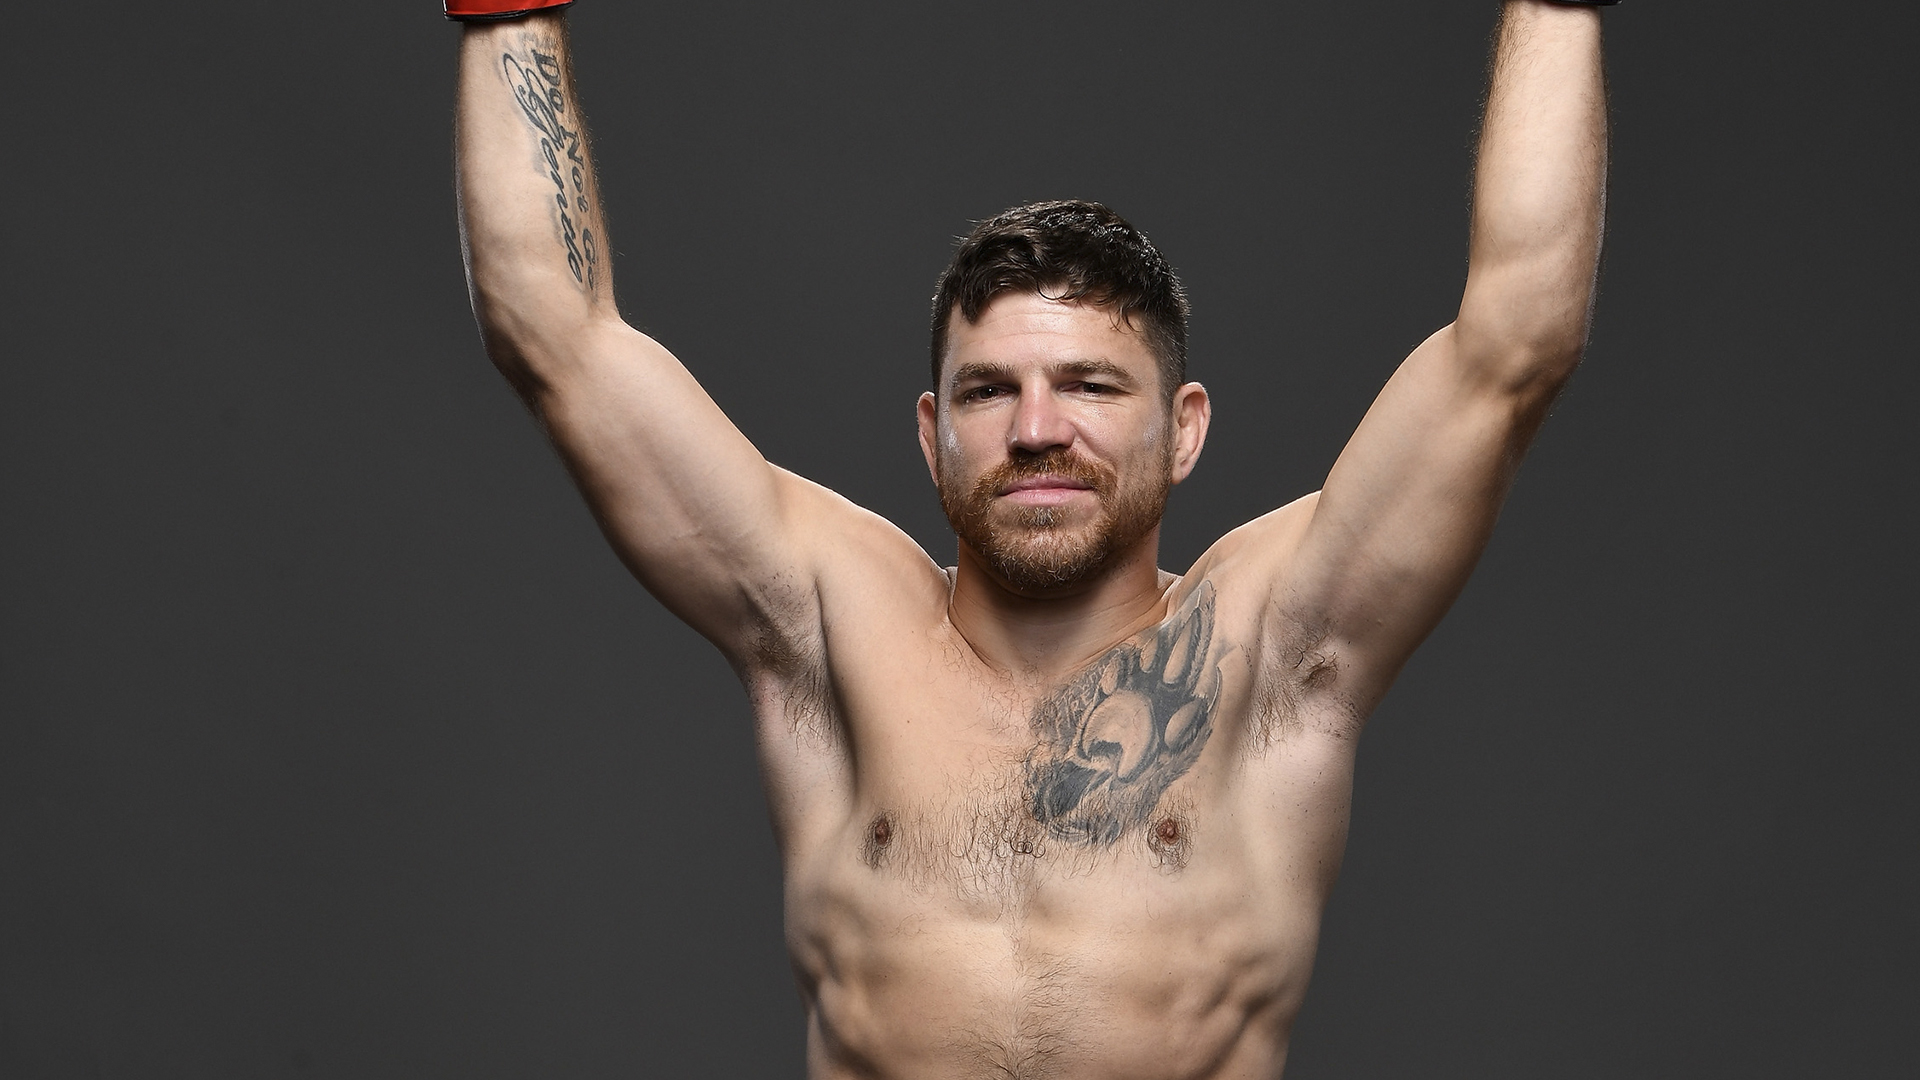 Jim Miller poses for a portrait backstage during the UFC Fight Night event at the Prudential Center on August 3, 2019 in Newark, New Jersey. (Photo by Mike Roach/Zuffa LLC)